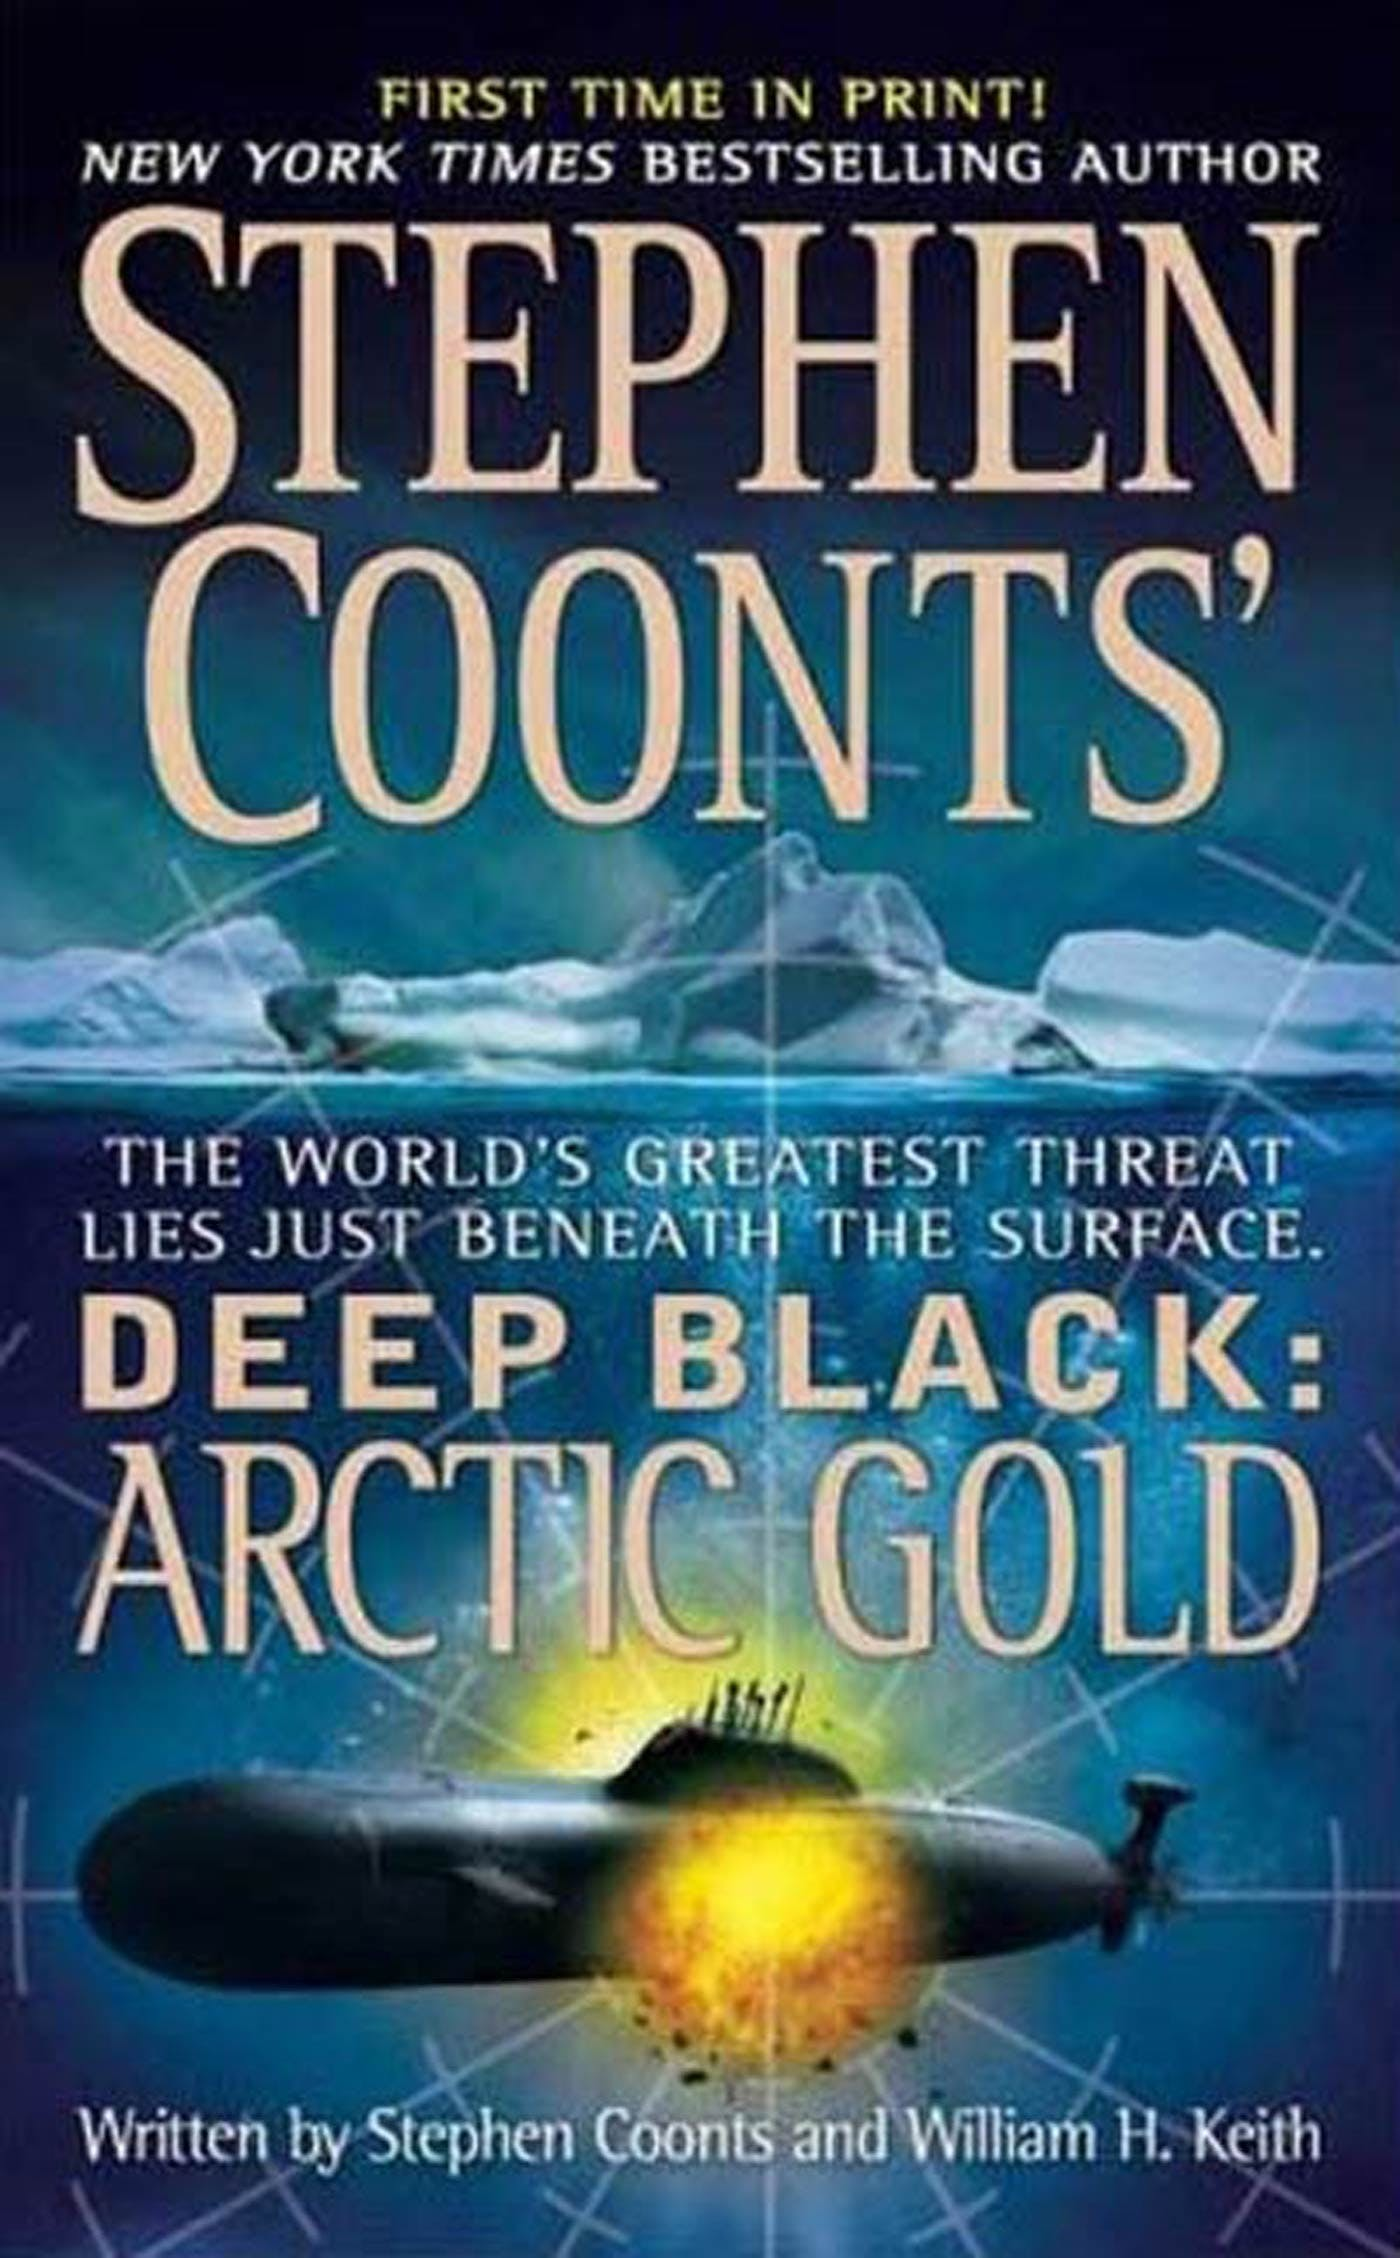 Image of Stephen Coonts' Deep Black: Arctic Gold